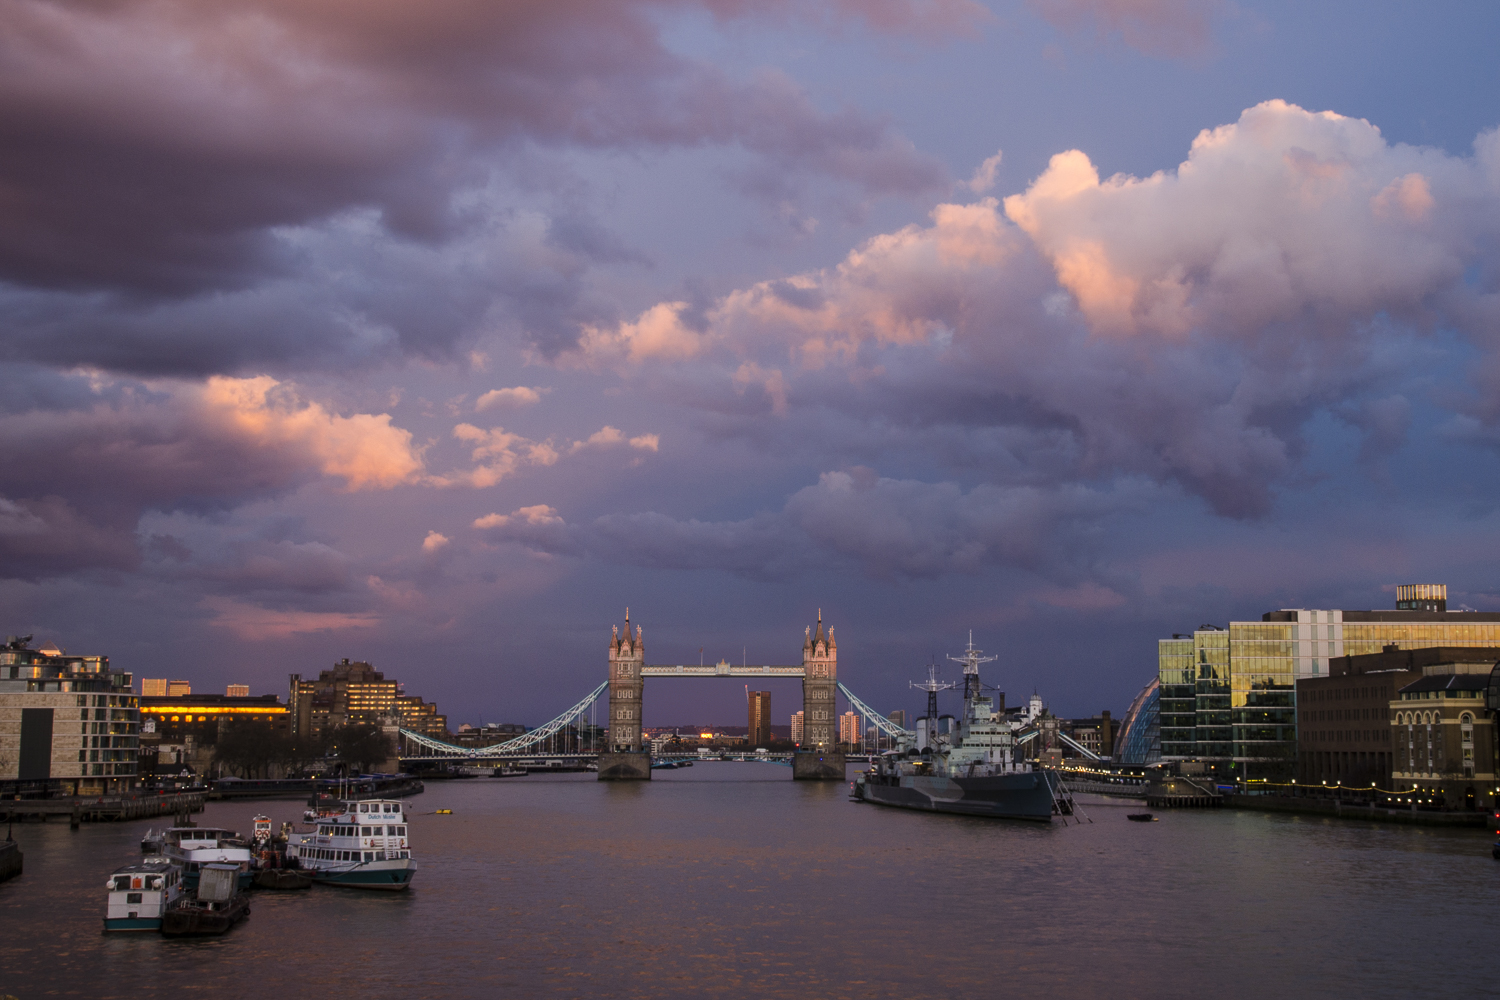 From London Bridge  Photography: Alexander J.E. Bradley - Nikon D7000 - AF-S NIKKOR 14-24mm f/2.8G ED @ 24mm - f/22 - 1/2 - ISO:100